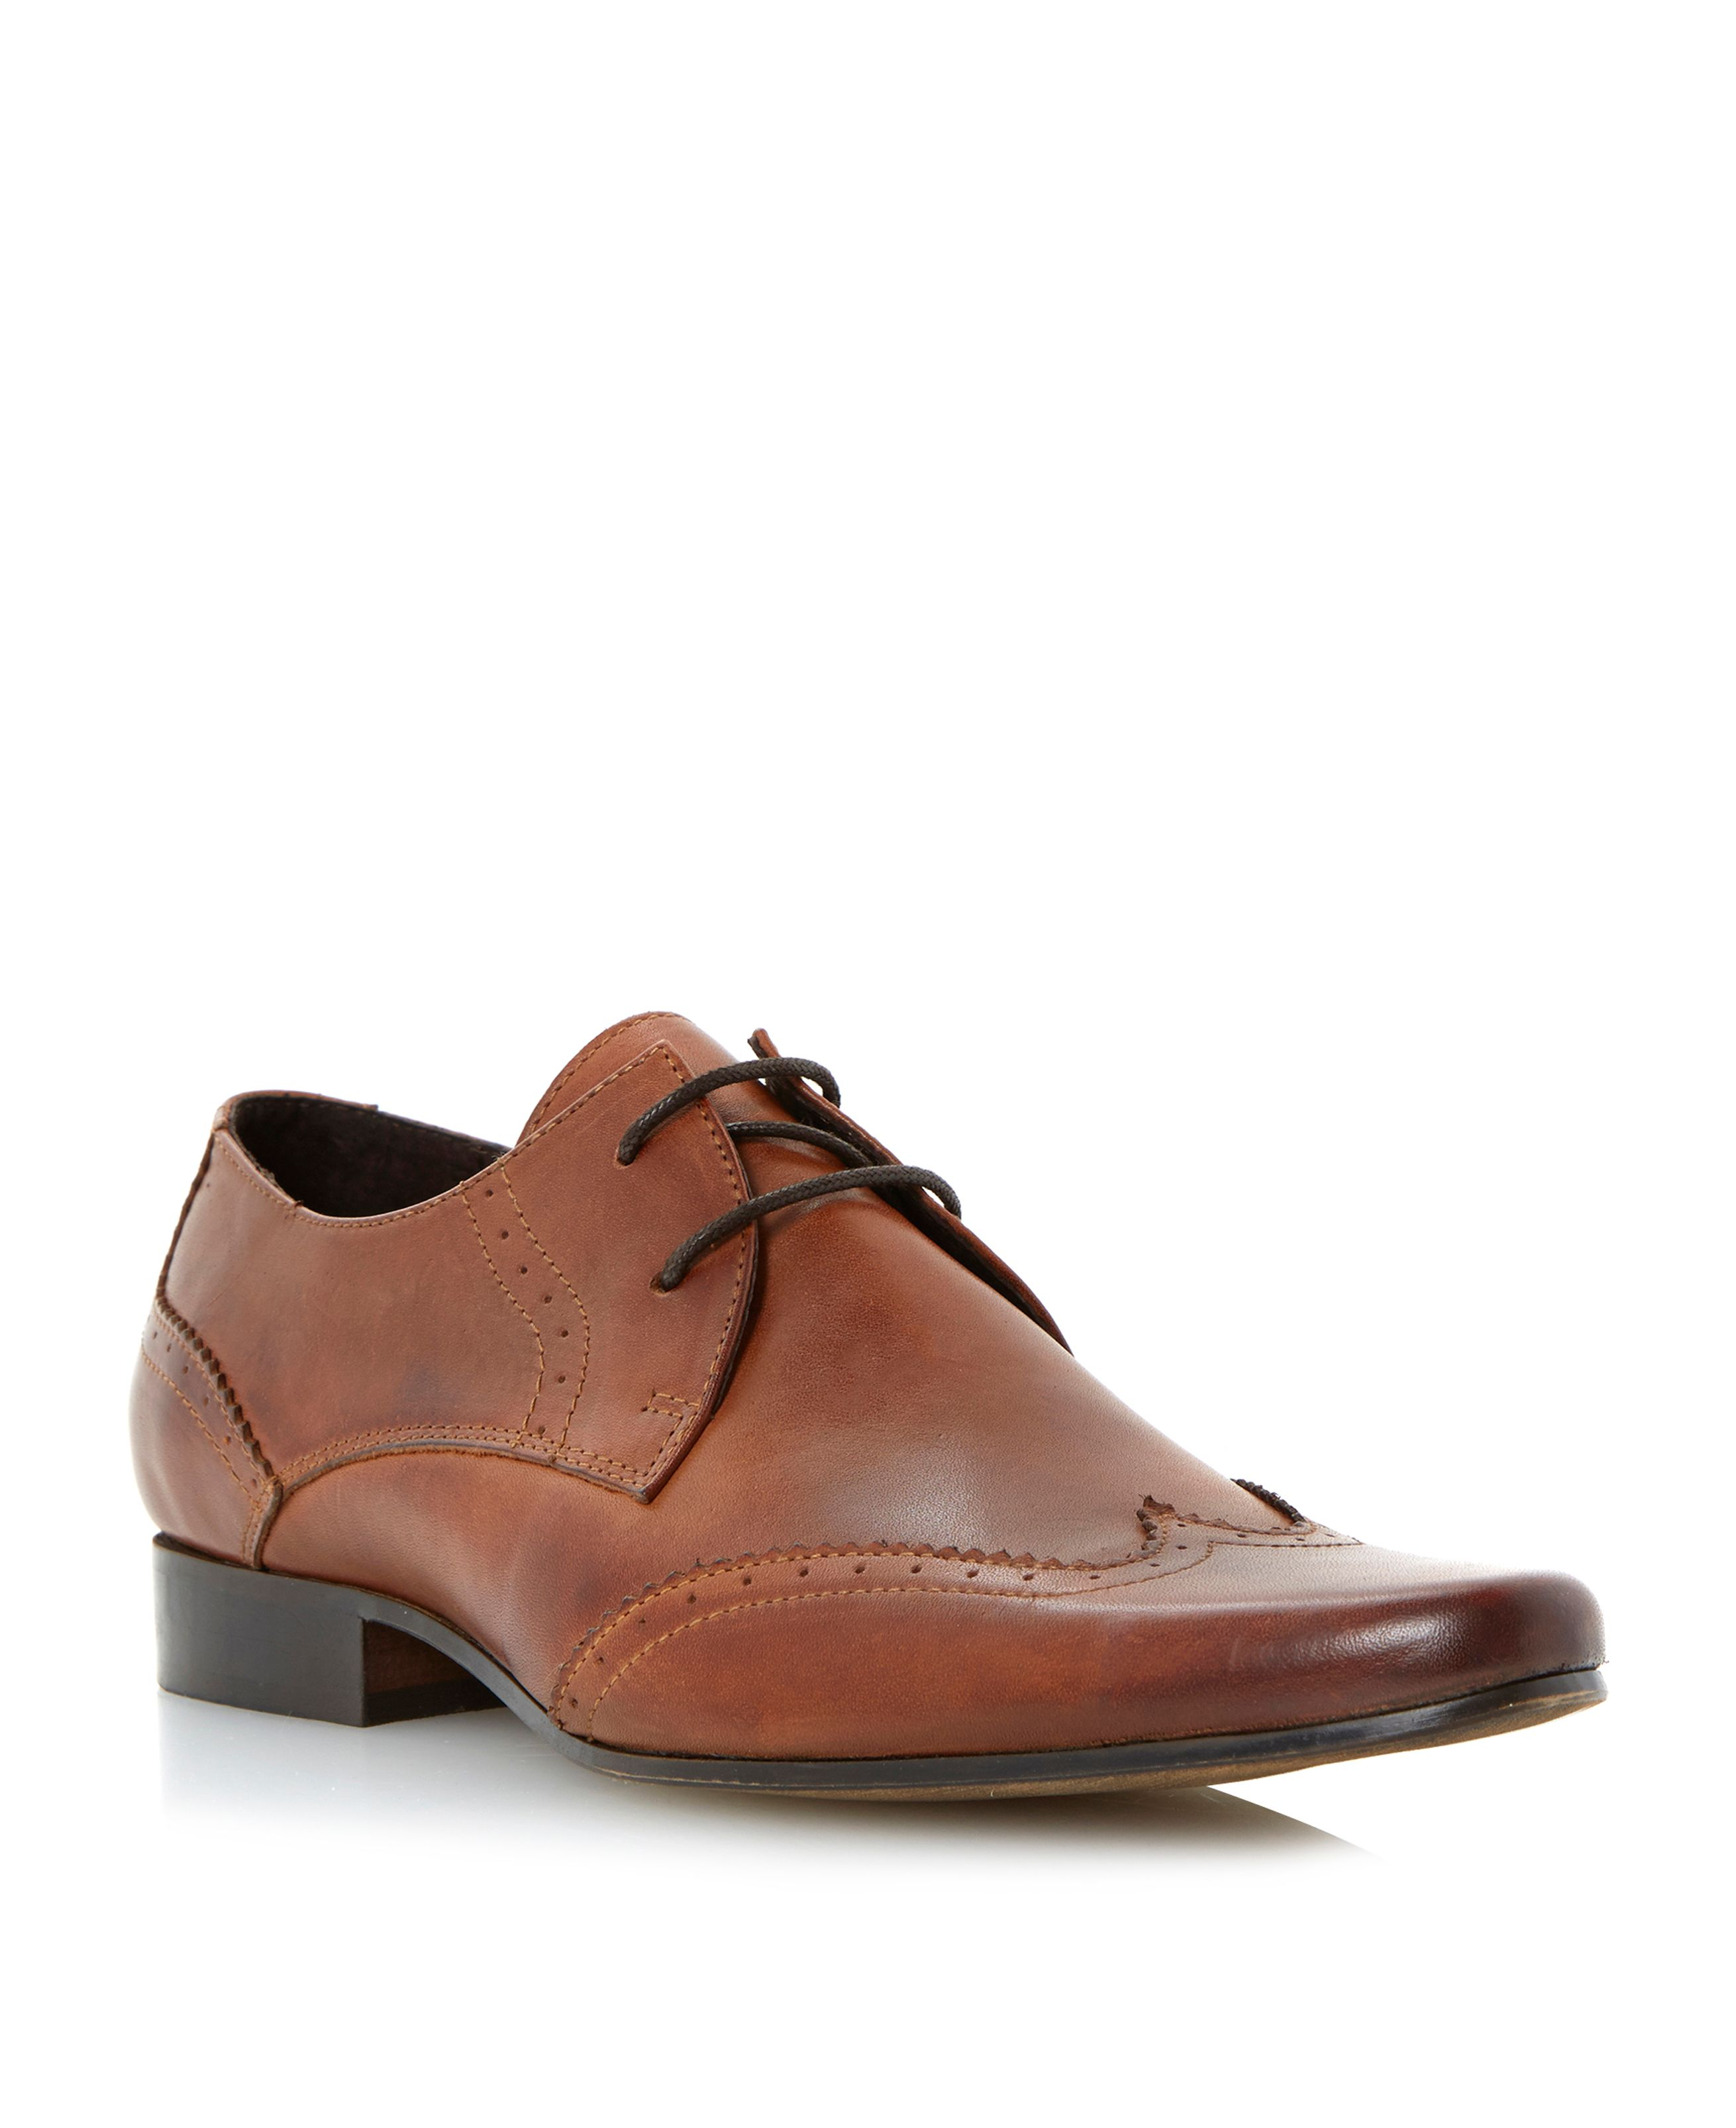 Rascal lace up brogue gibson shoes